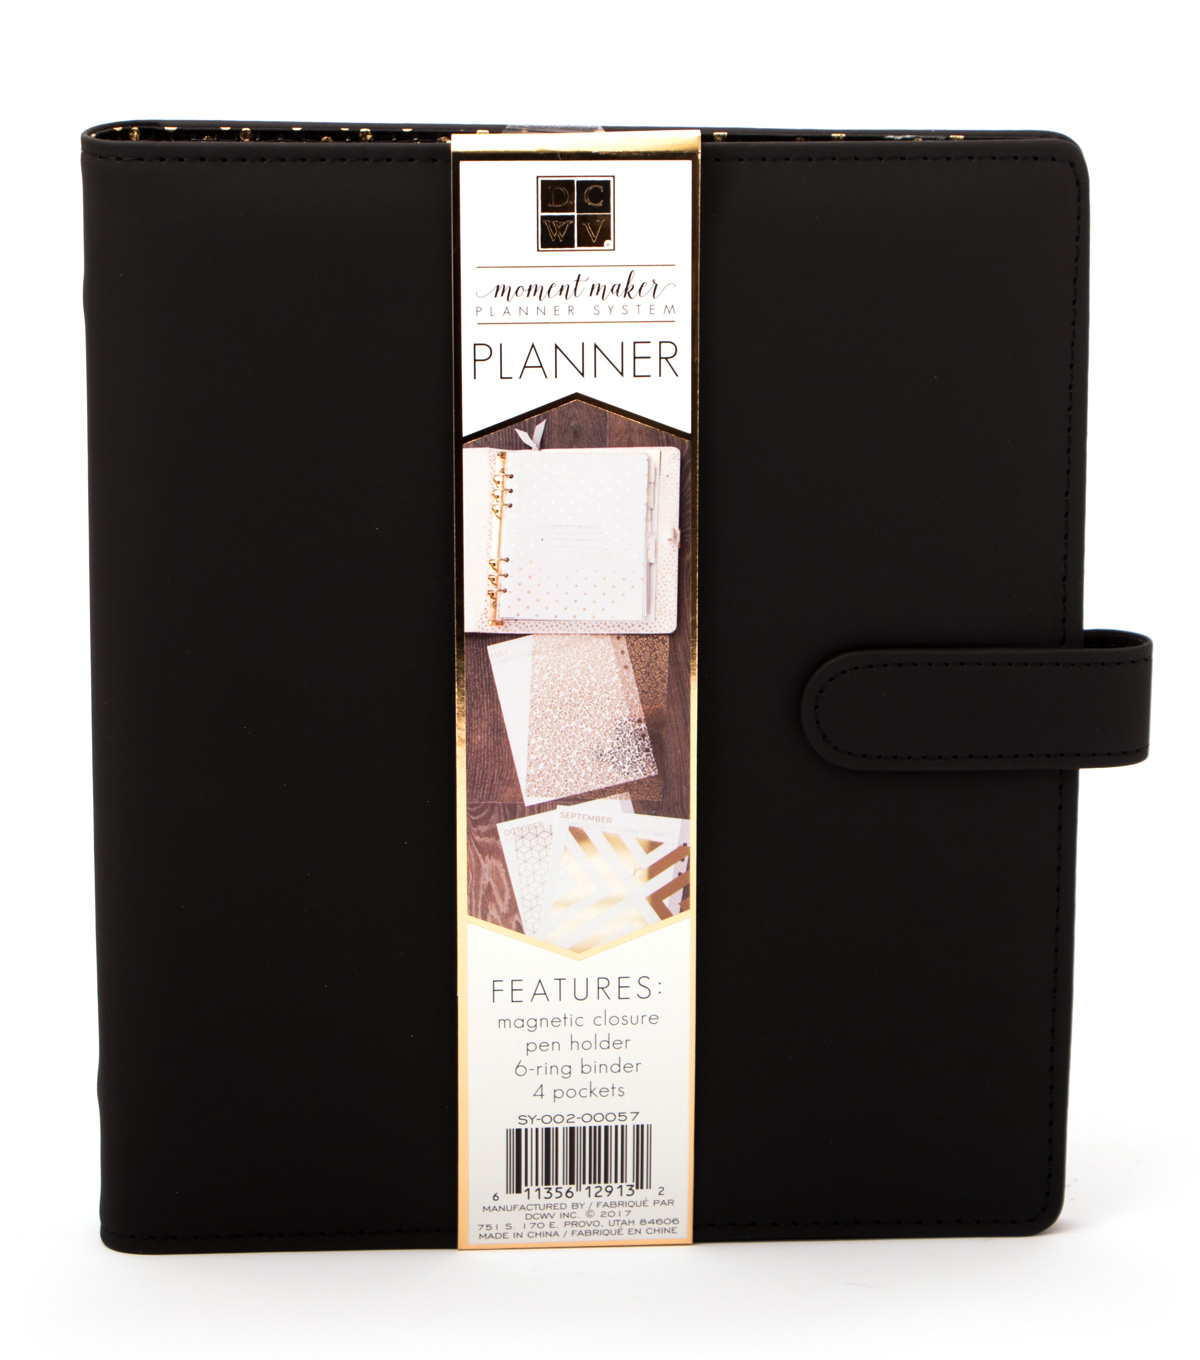 DCWV Moment Maker Planner-Black